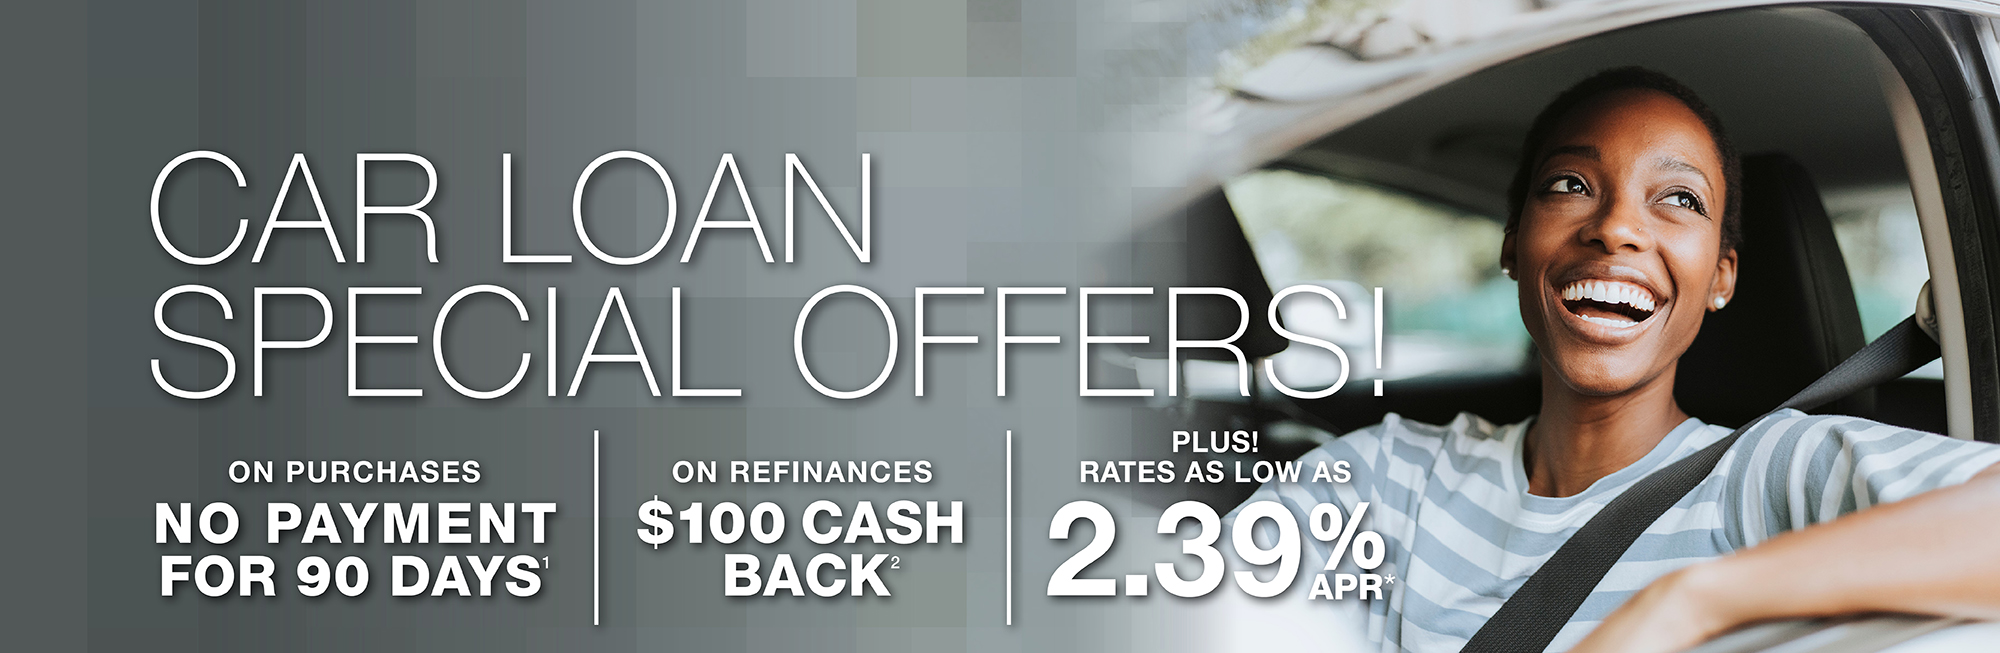 Car Loan special offers! Find out how you can save!